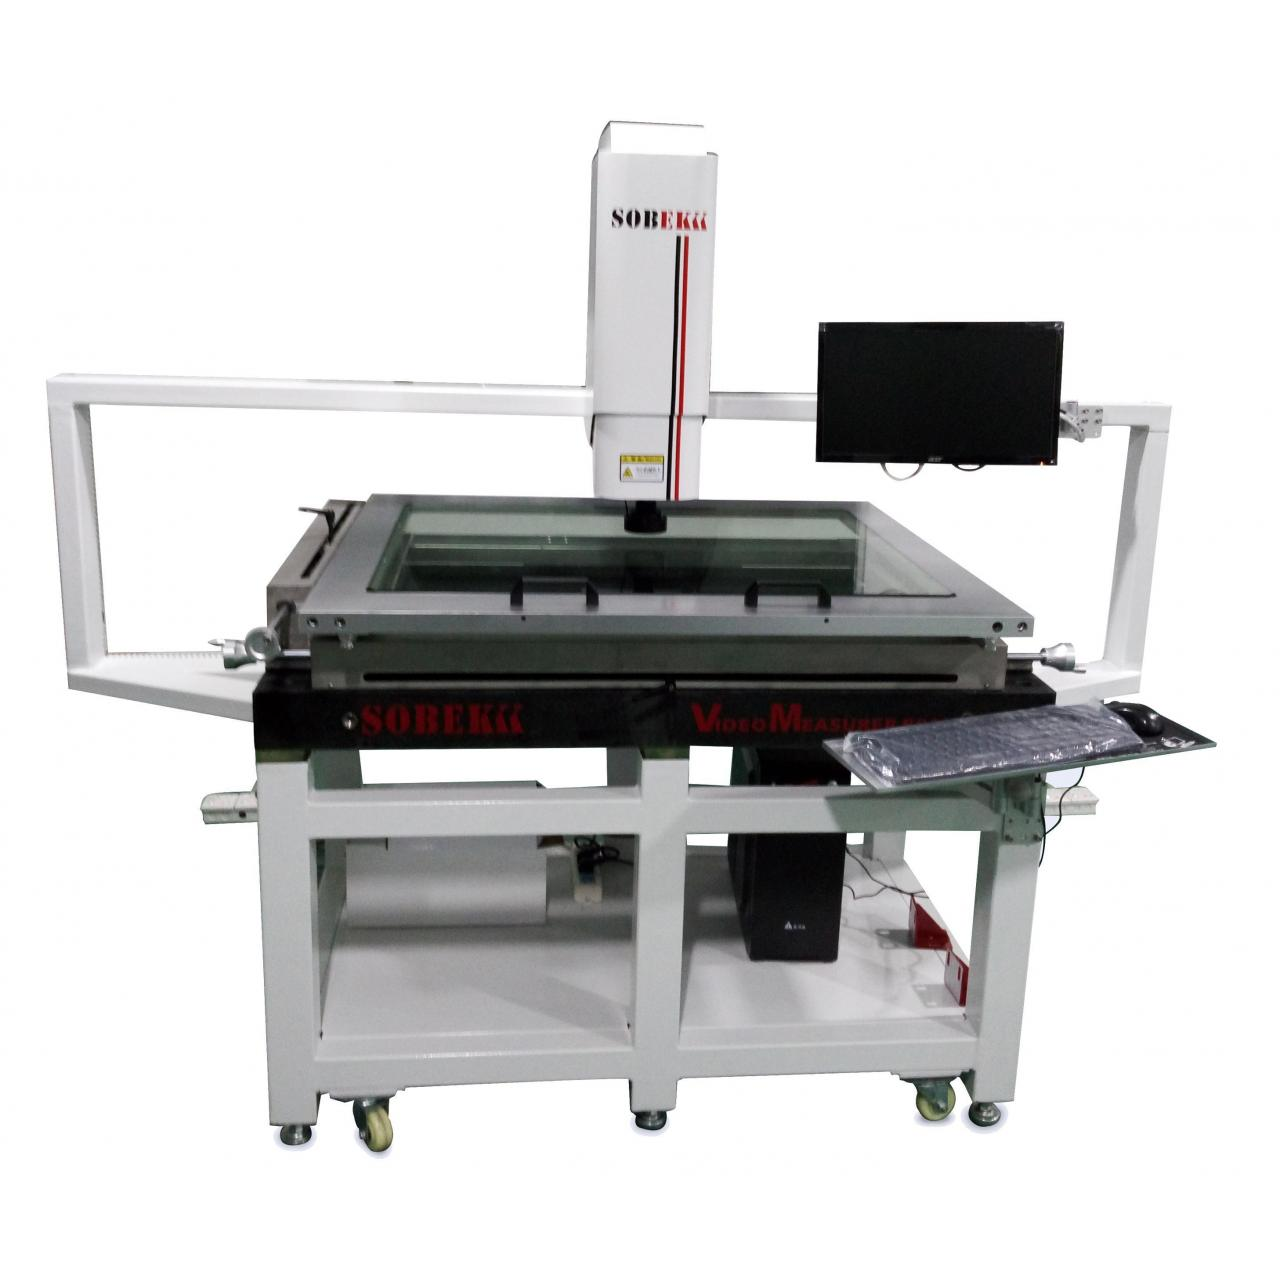 Buy cheap S-semi-auto brige S800 bridge semi-automatic video measuring machine from wholesalers